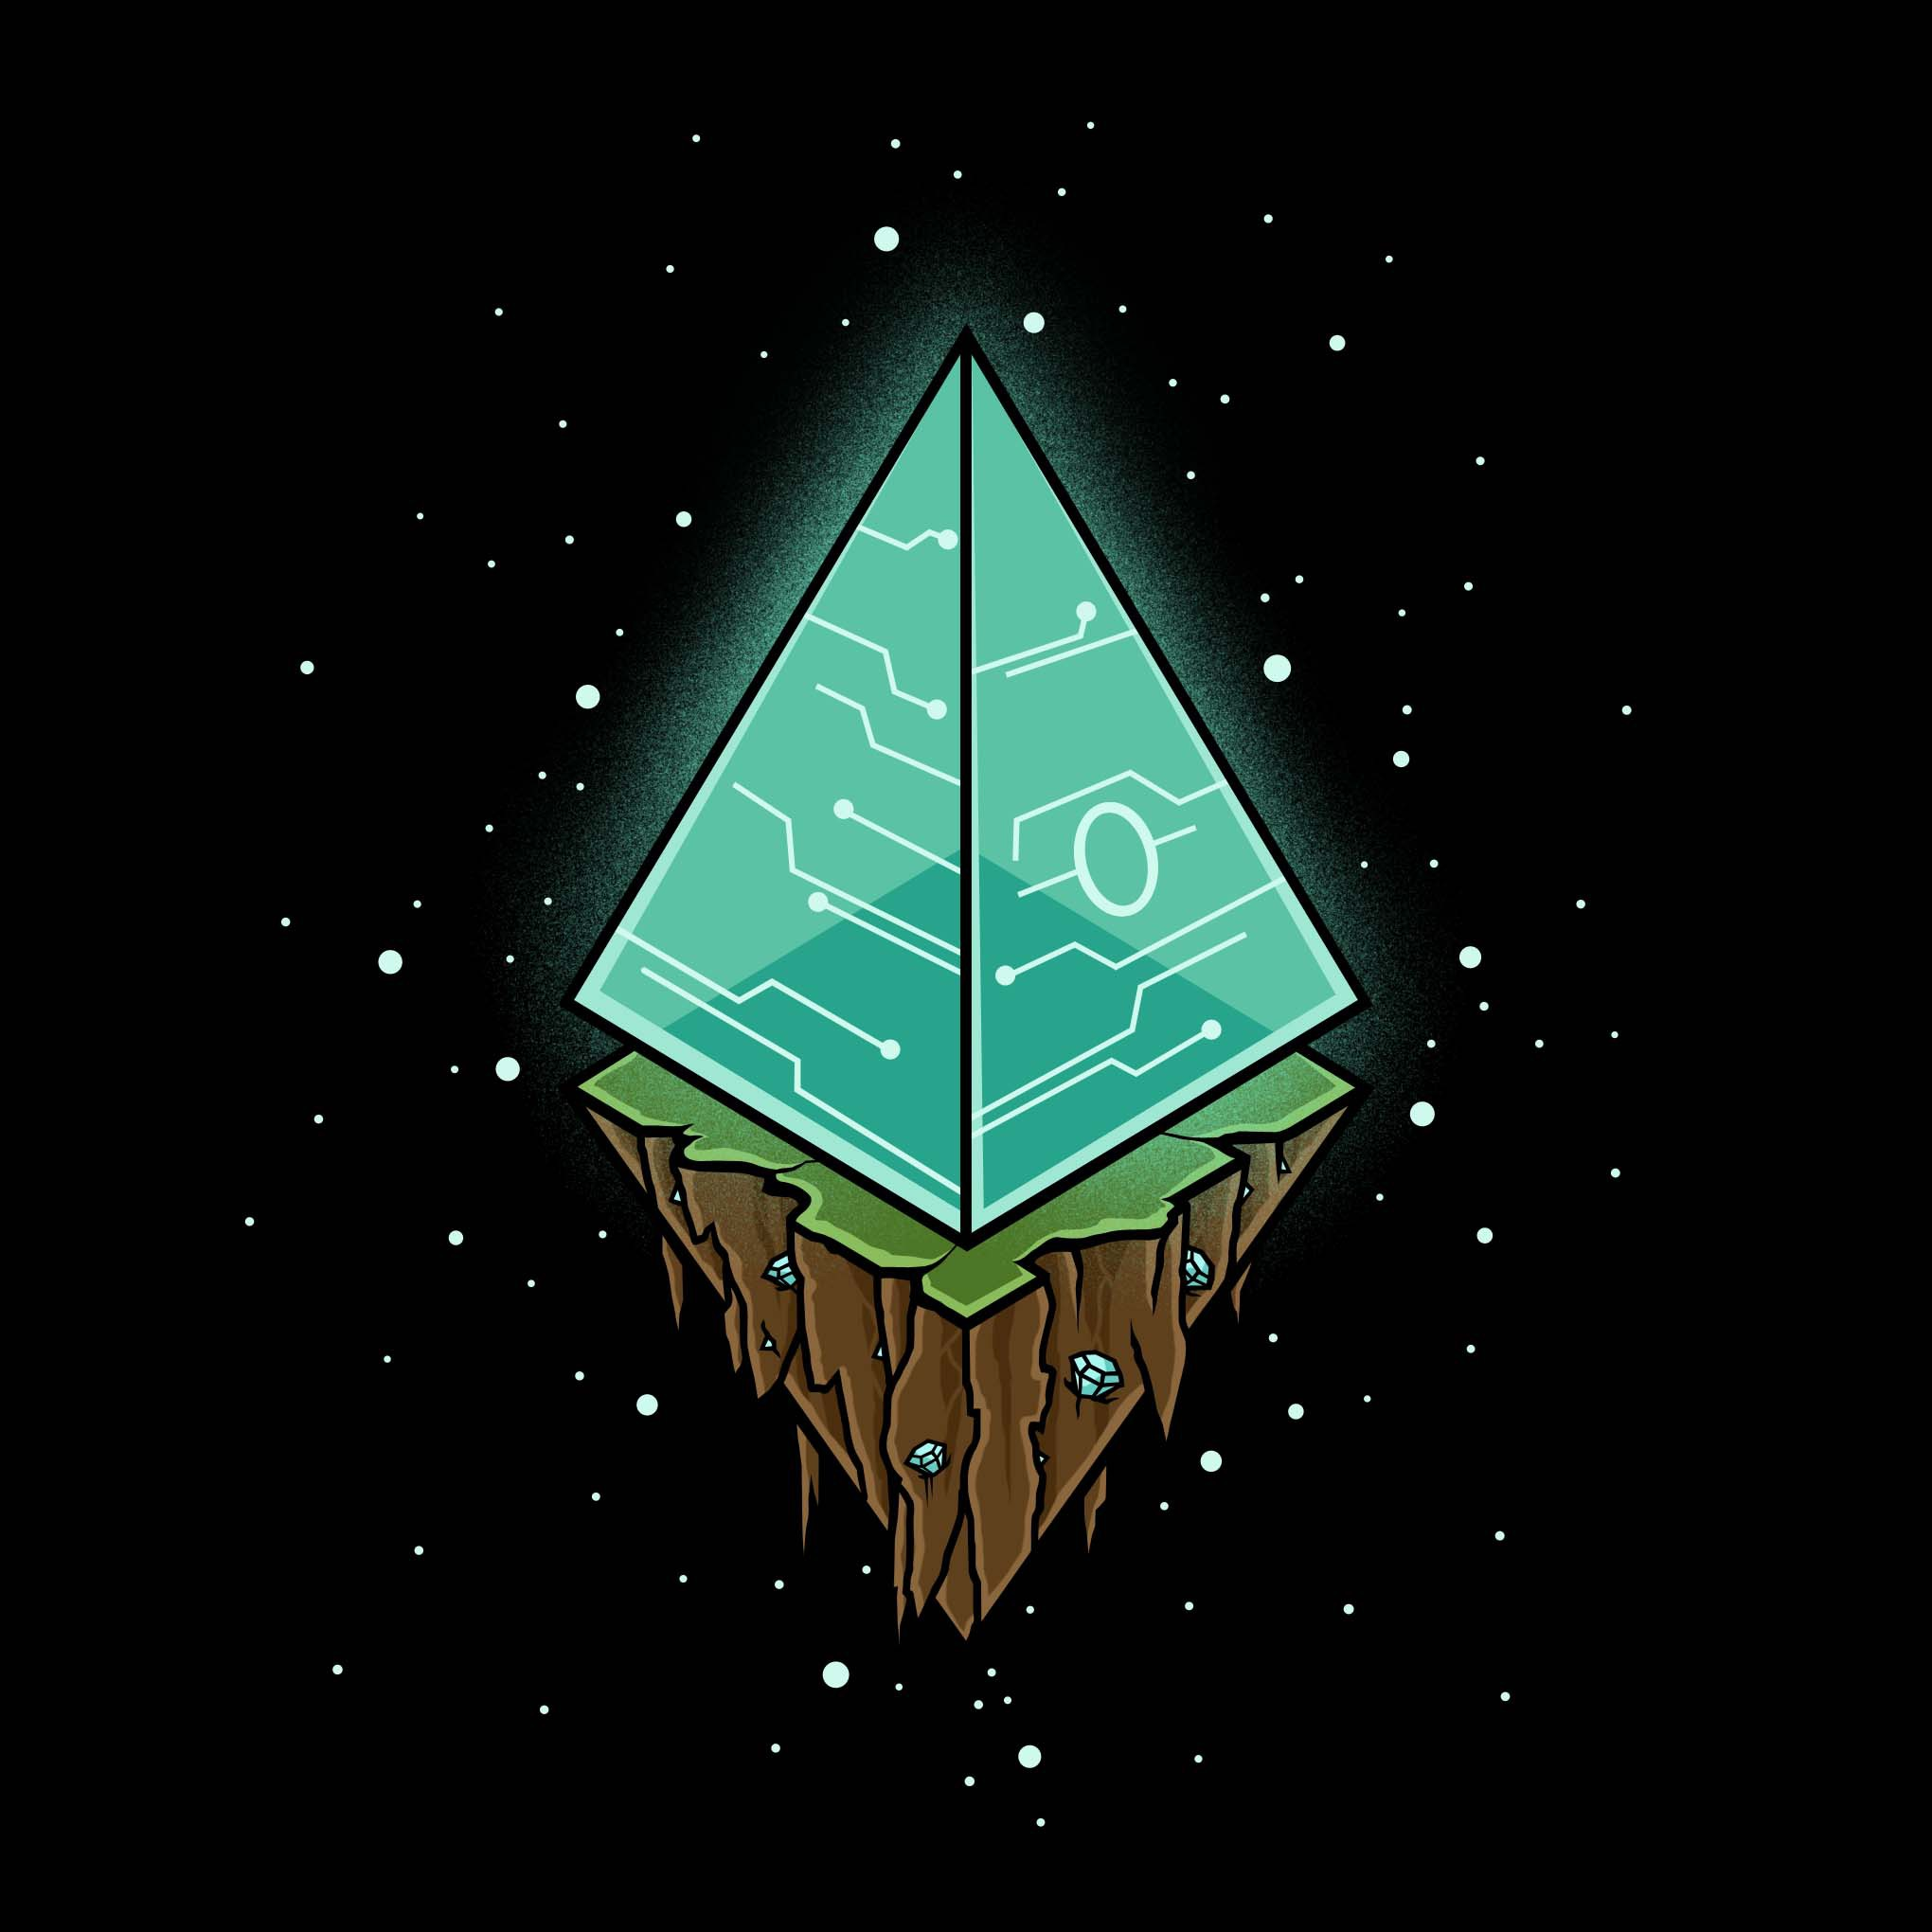 Design an Ethereum inspired t-shirt that appeals to crypto enthusiasts